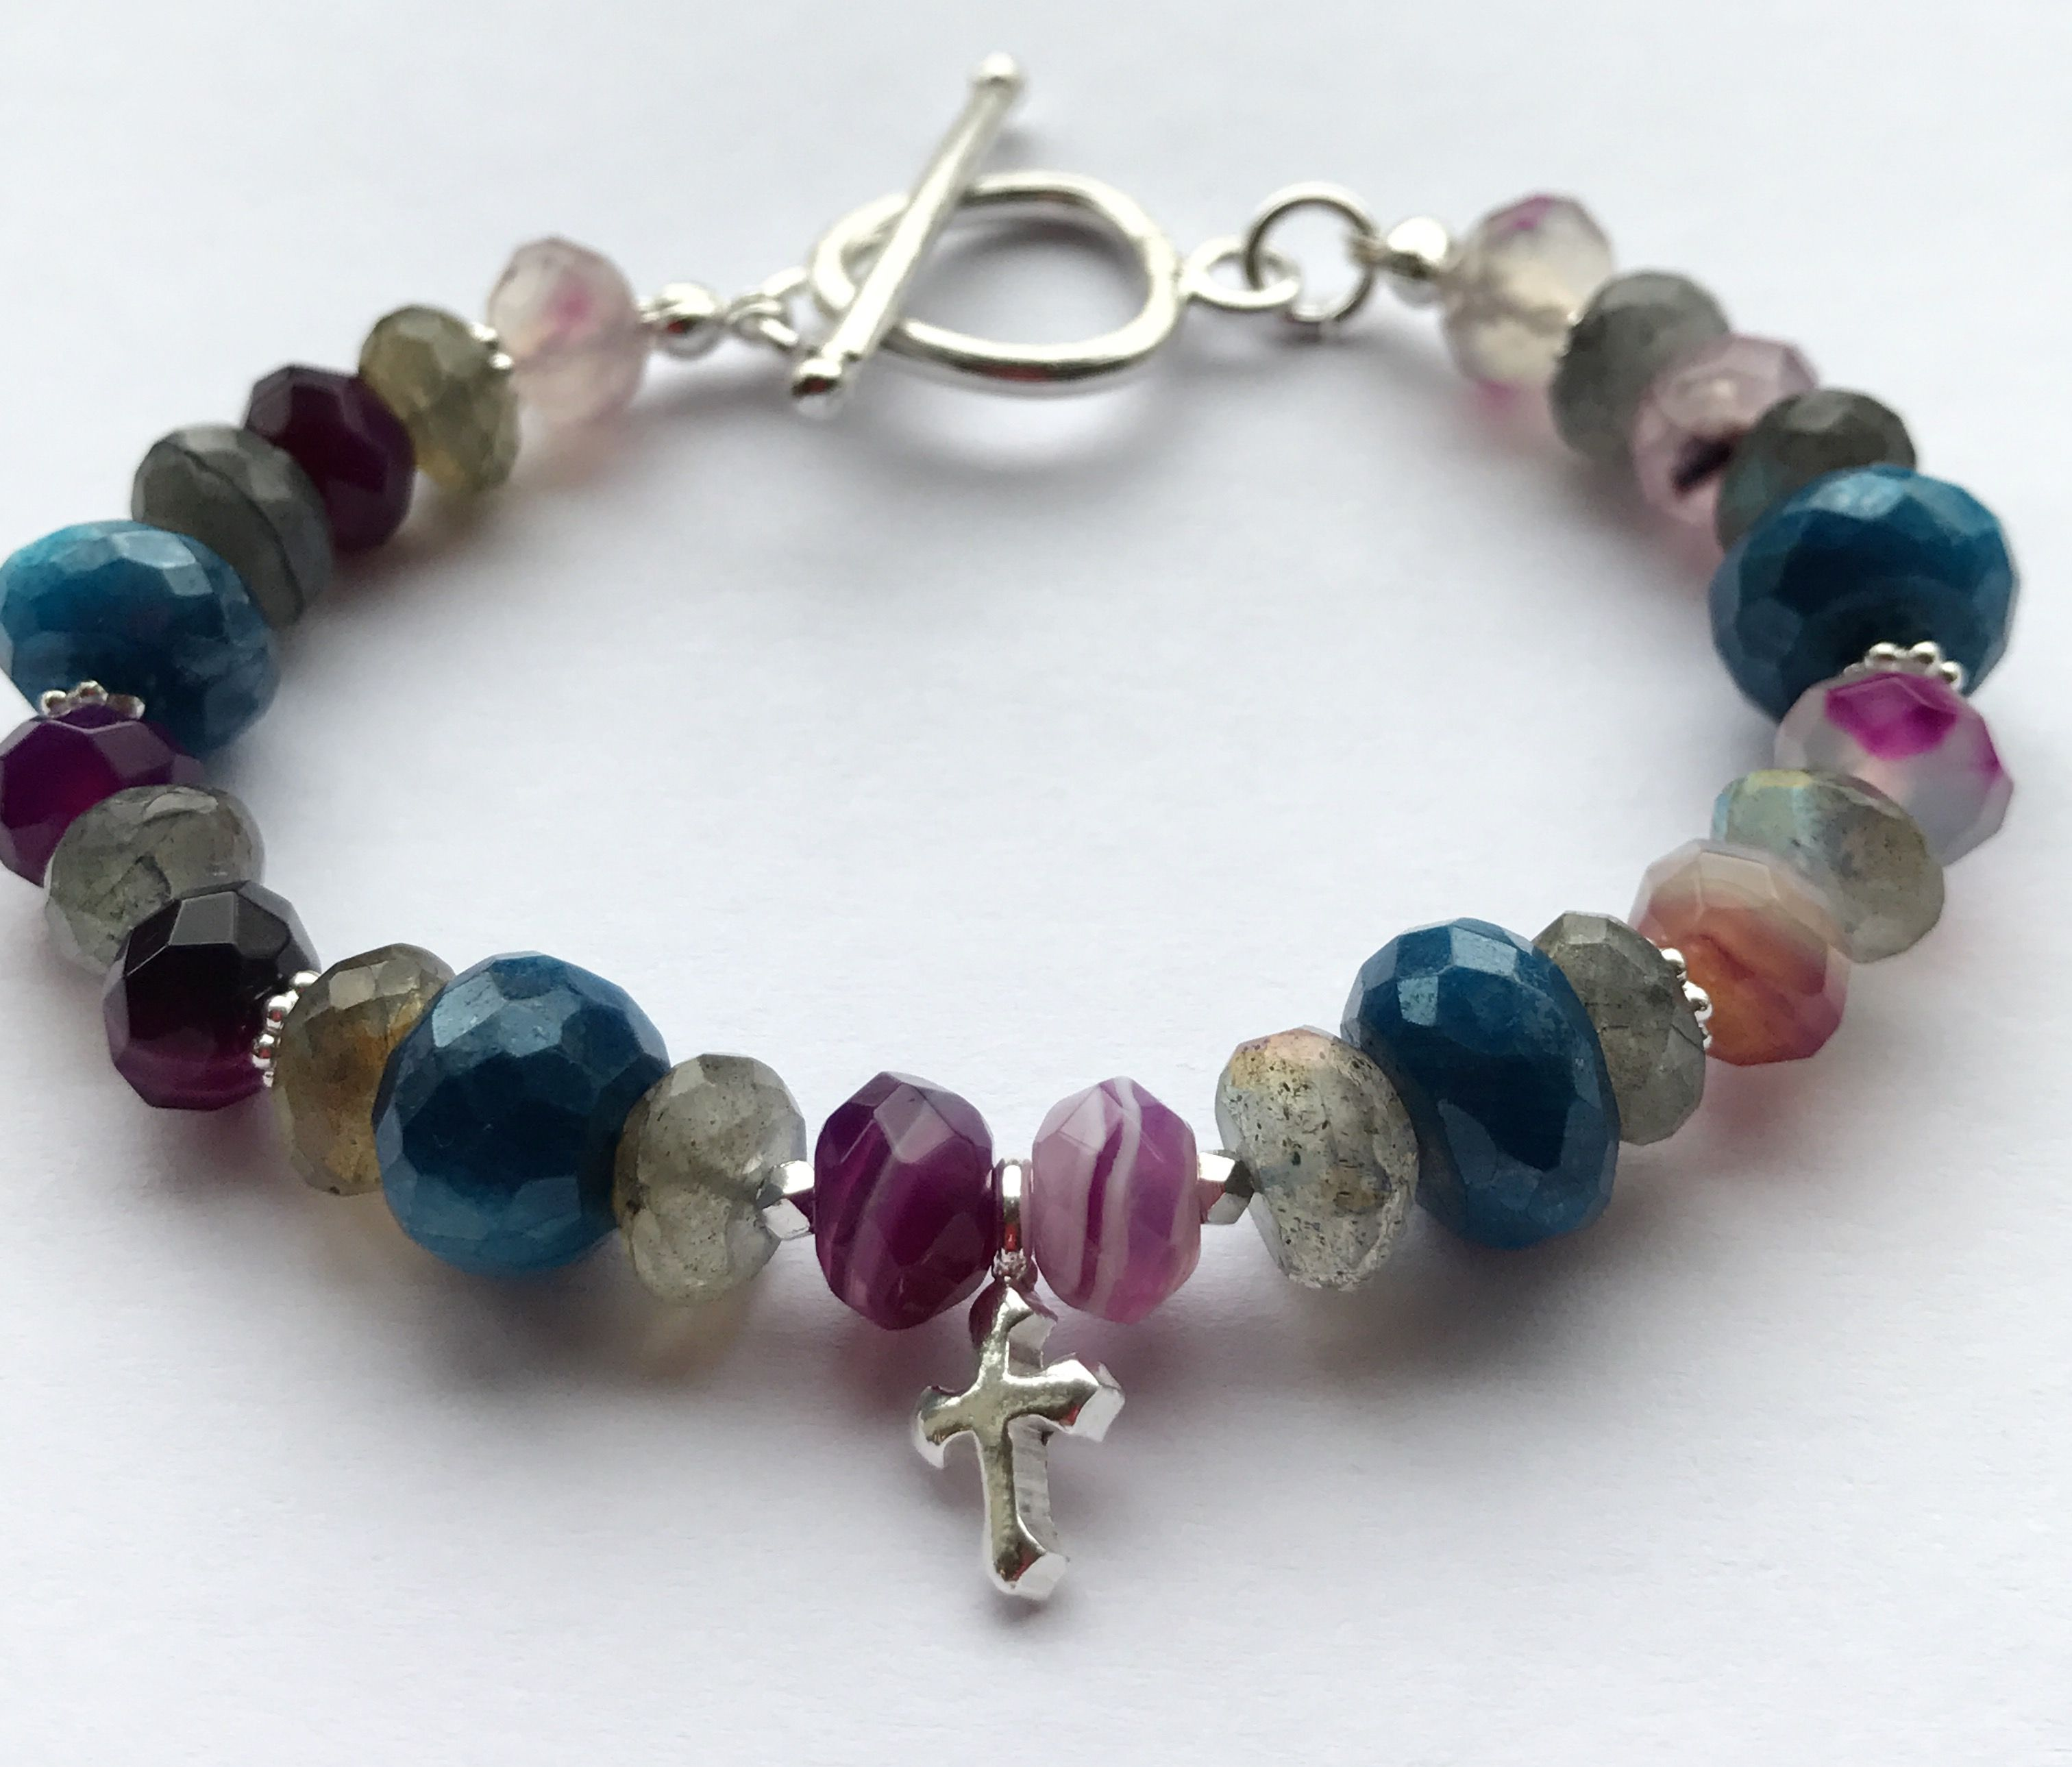 daylyn gemstone fluorite jewellery products bracelets